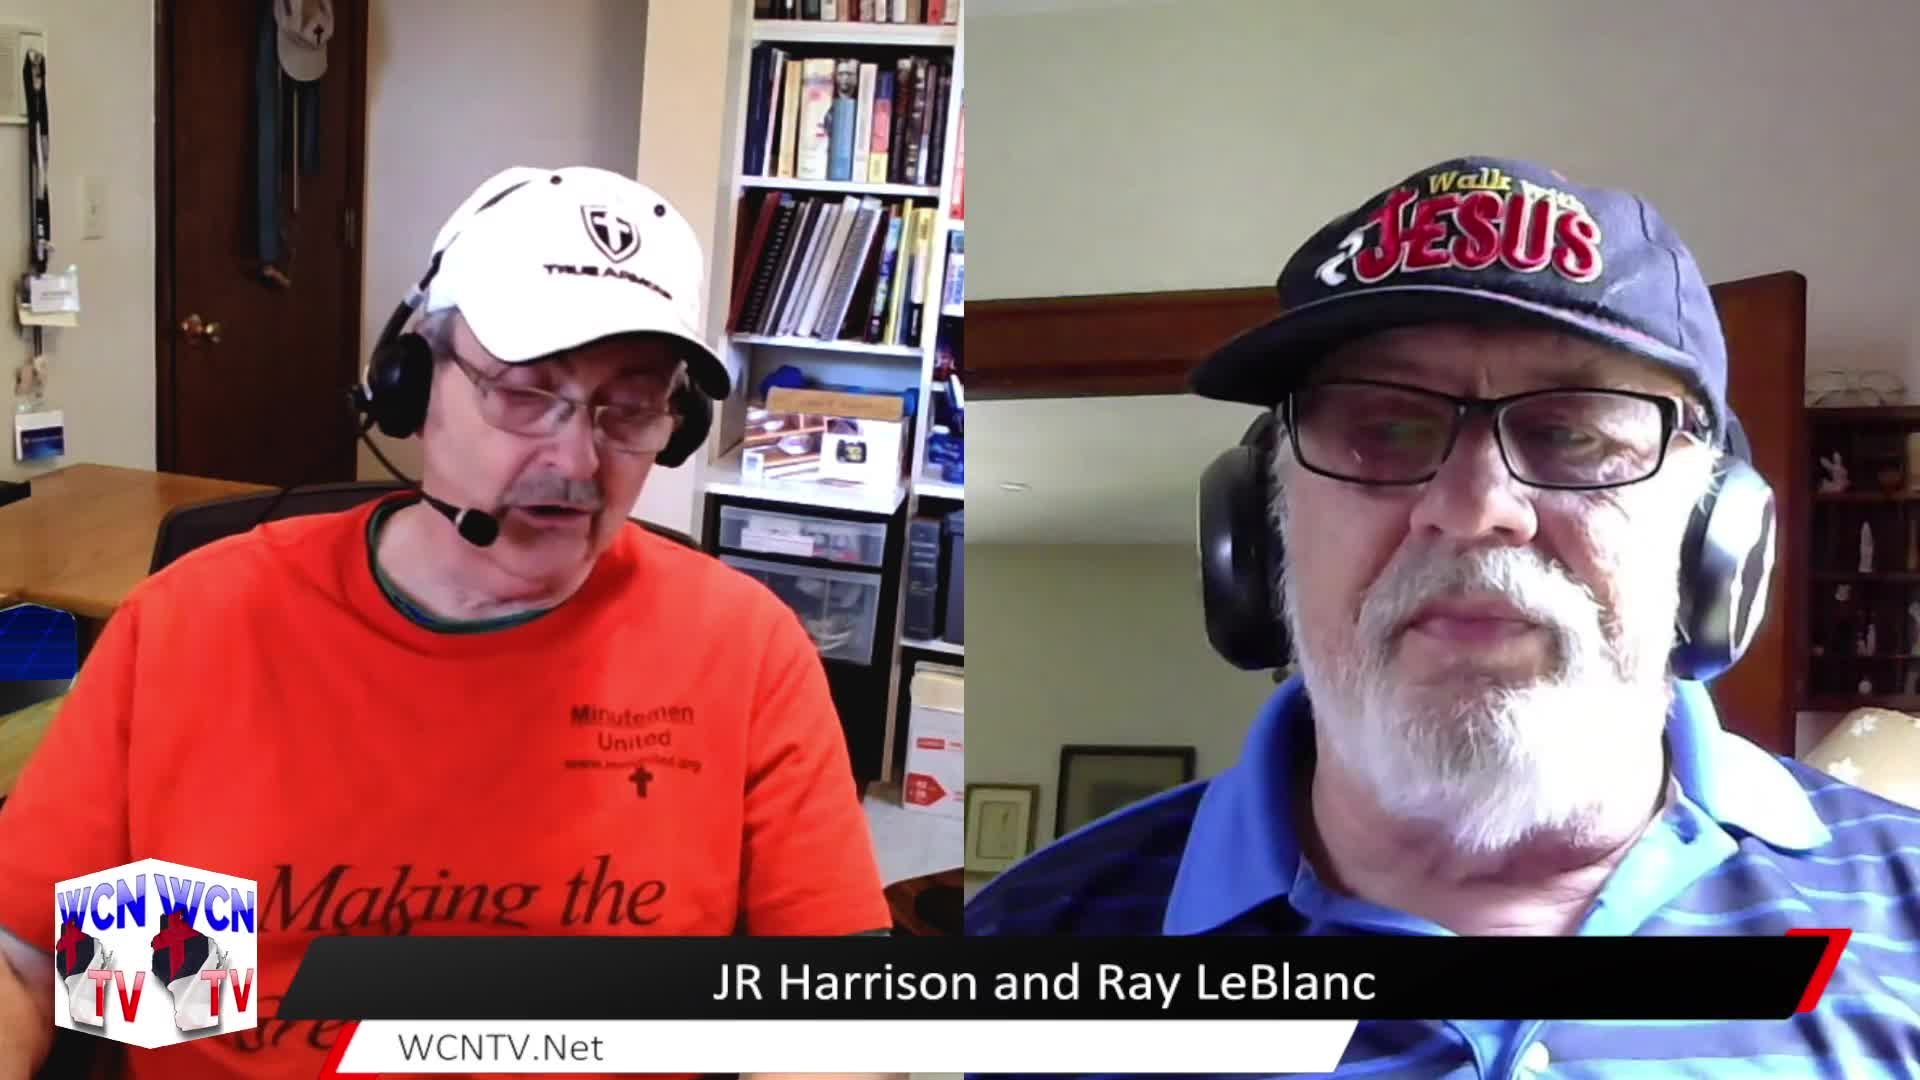 WCN-TV | July 21st, 2021 | JR Harrison and Ray LeBlanc